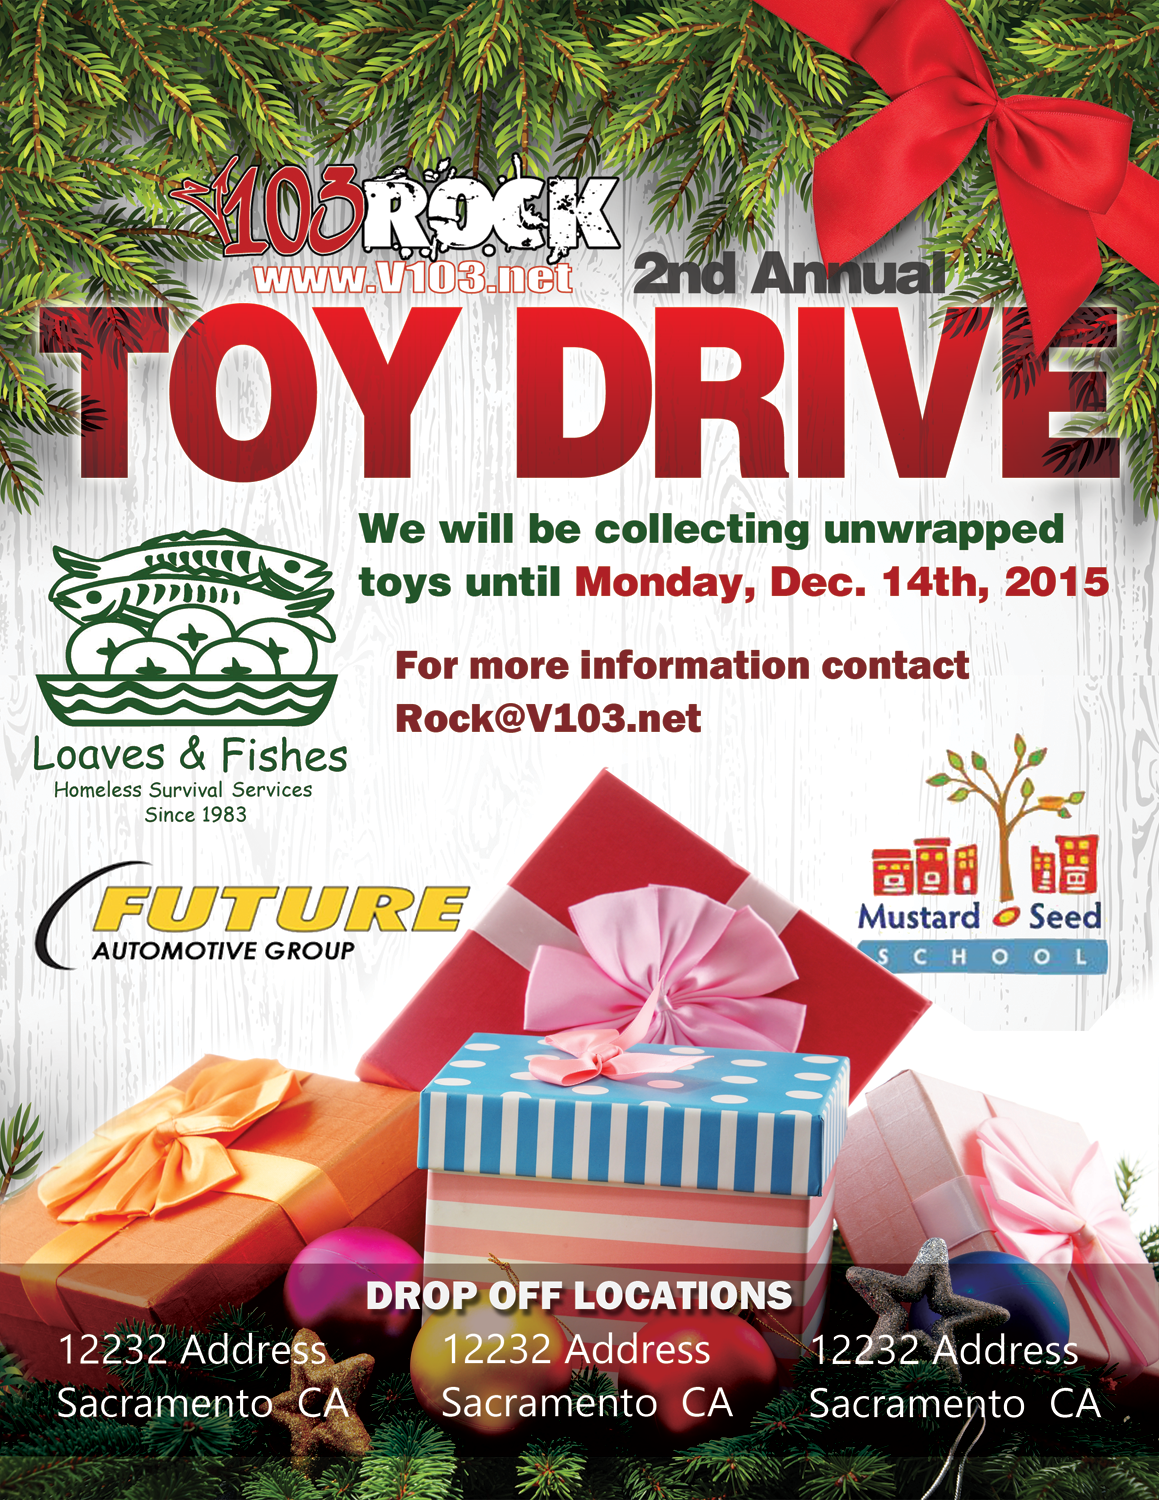 Toy Drive Flyer Template : V toy drive flyer by fireproofgfx on deviantart